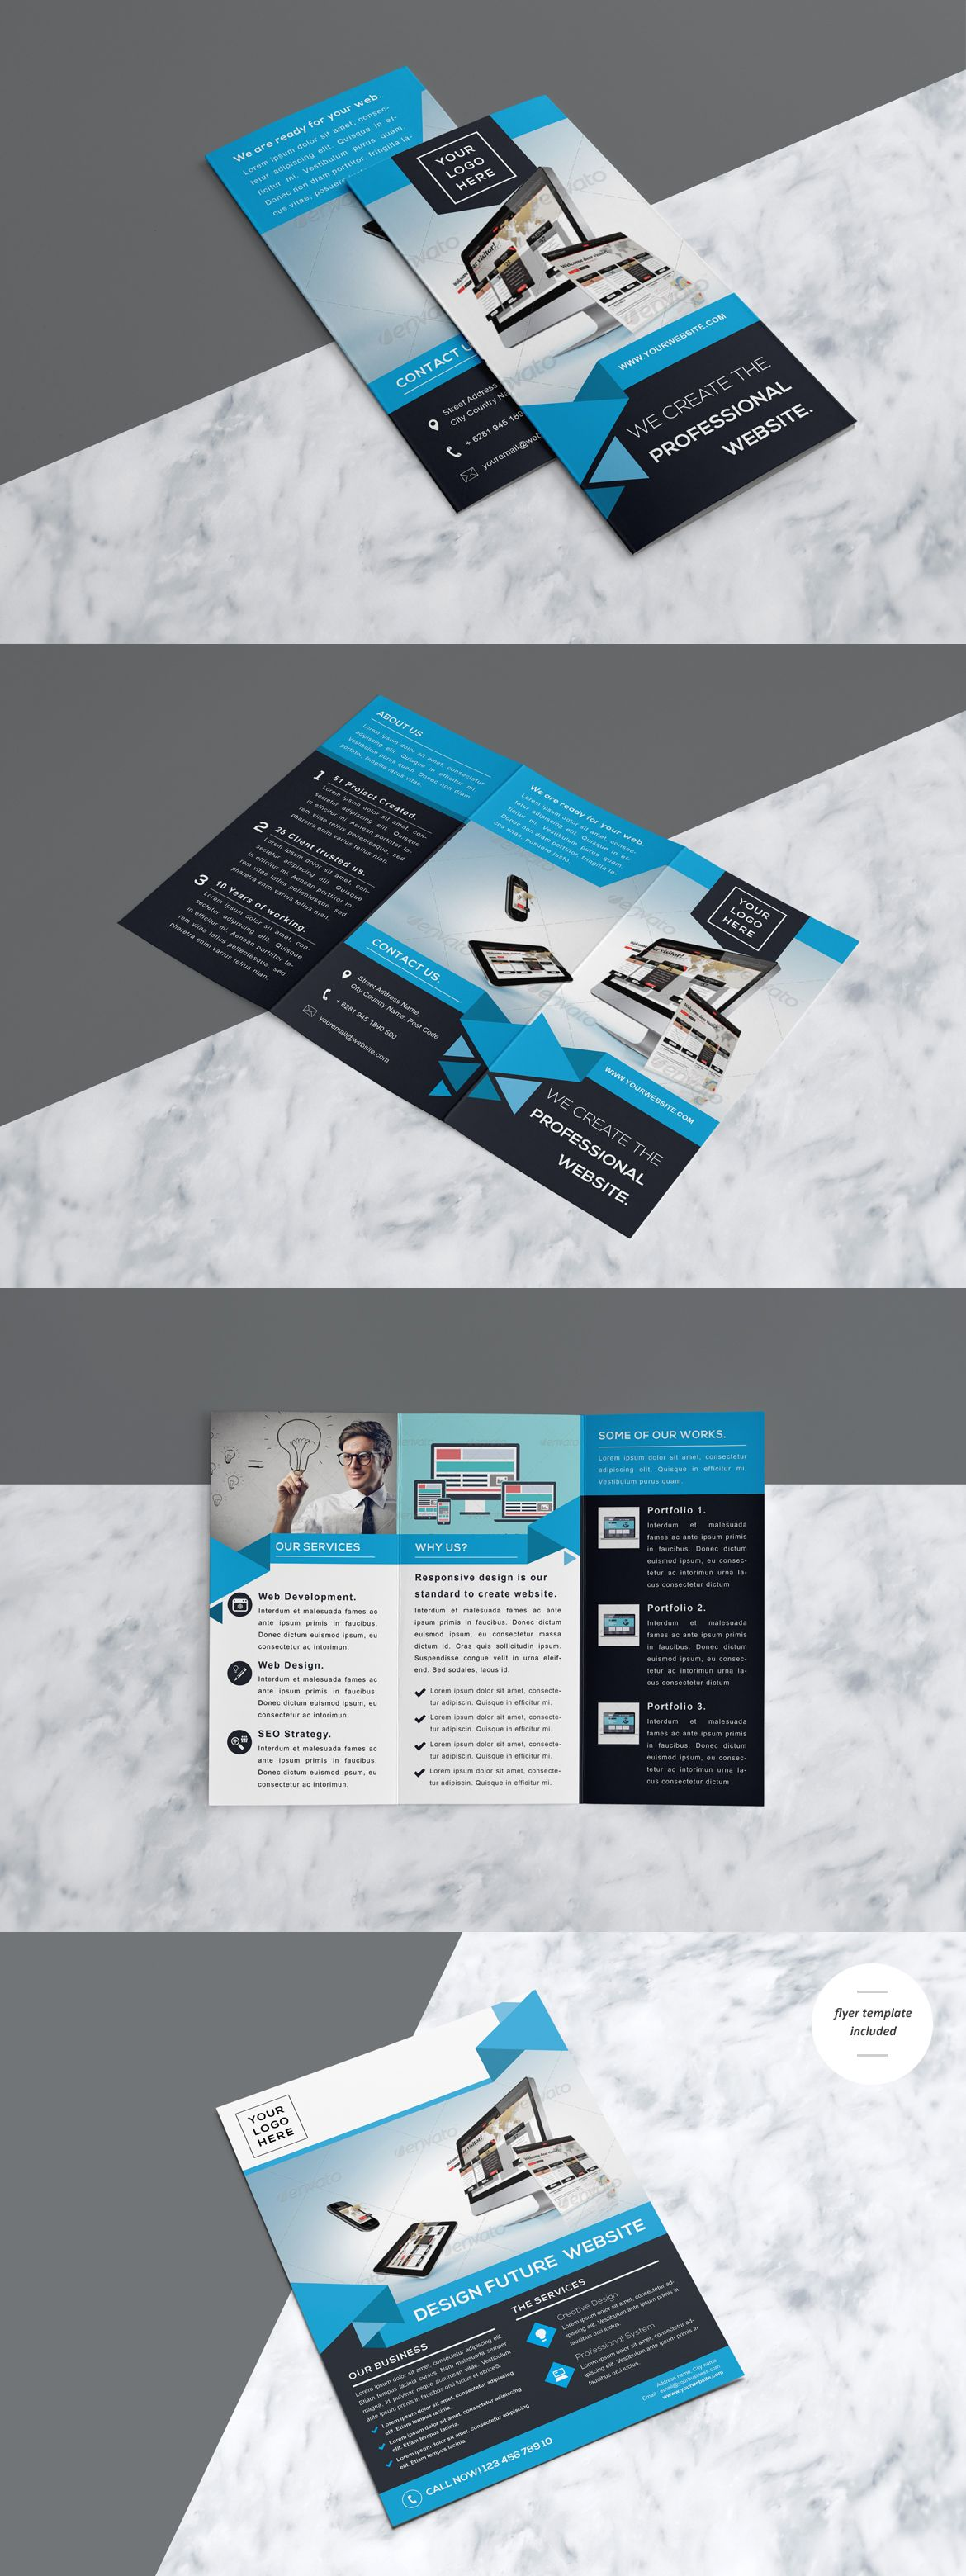 Professional & Modern Website Design Trifold Brochure Which Include ...